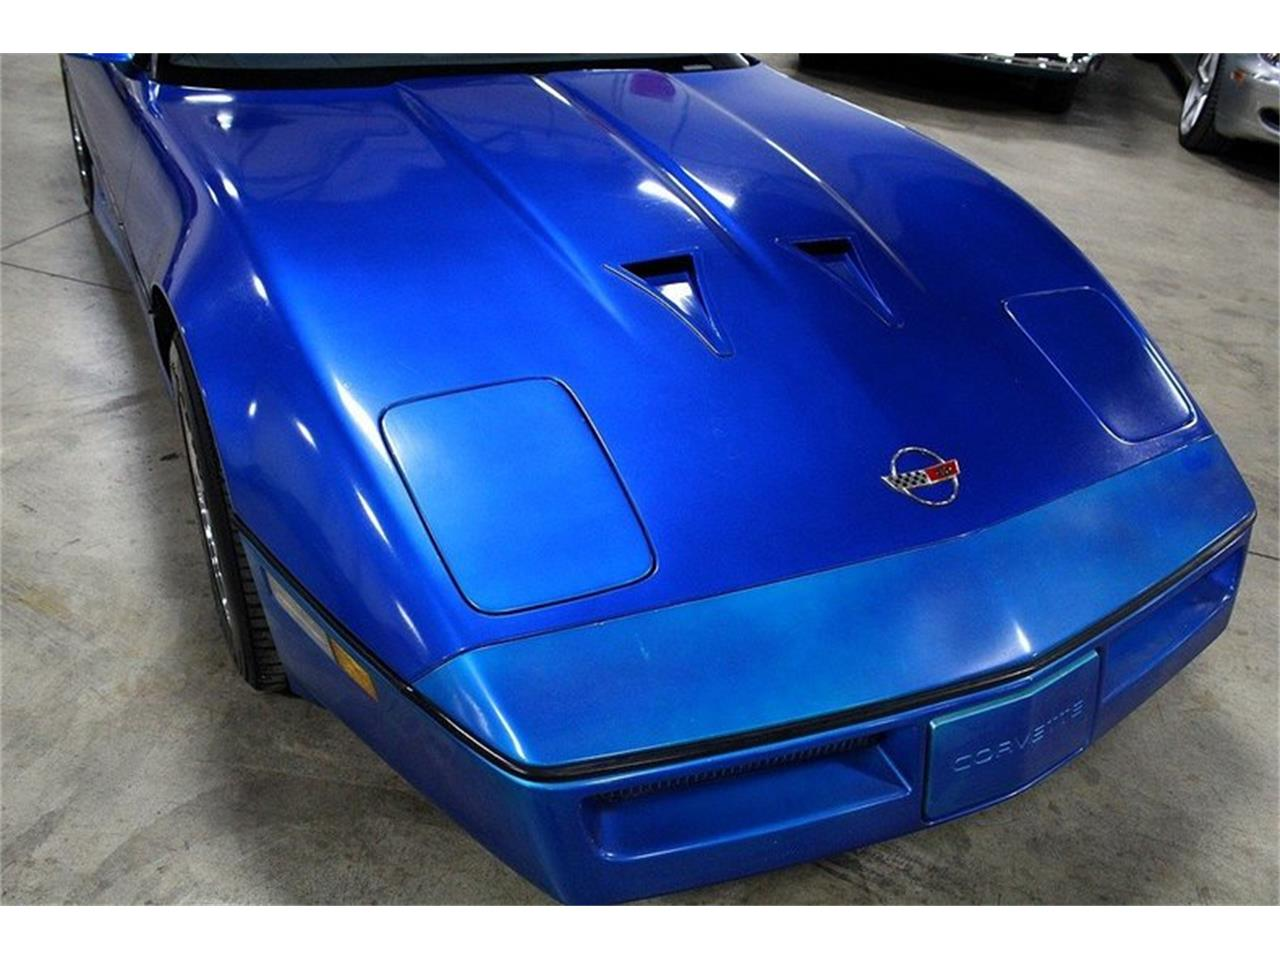 Large Picture of '85 Chevrolet Corvette located in Kentwood Michigan - $9,900.00 - LBV1